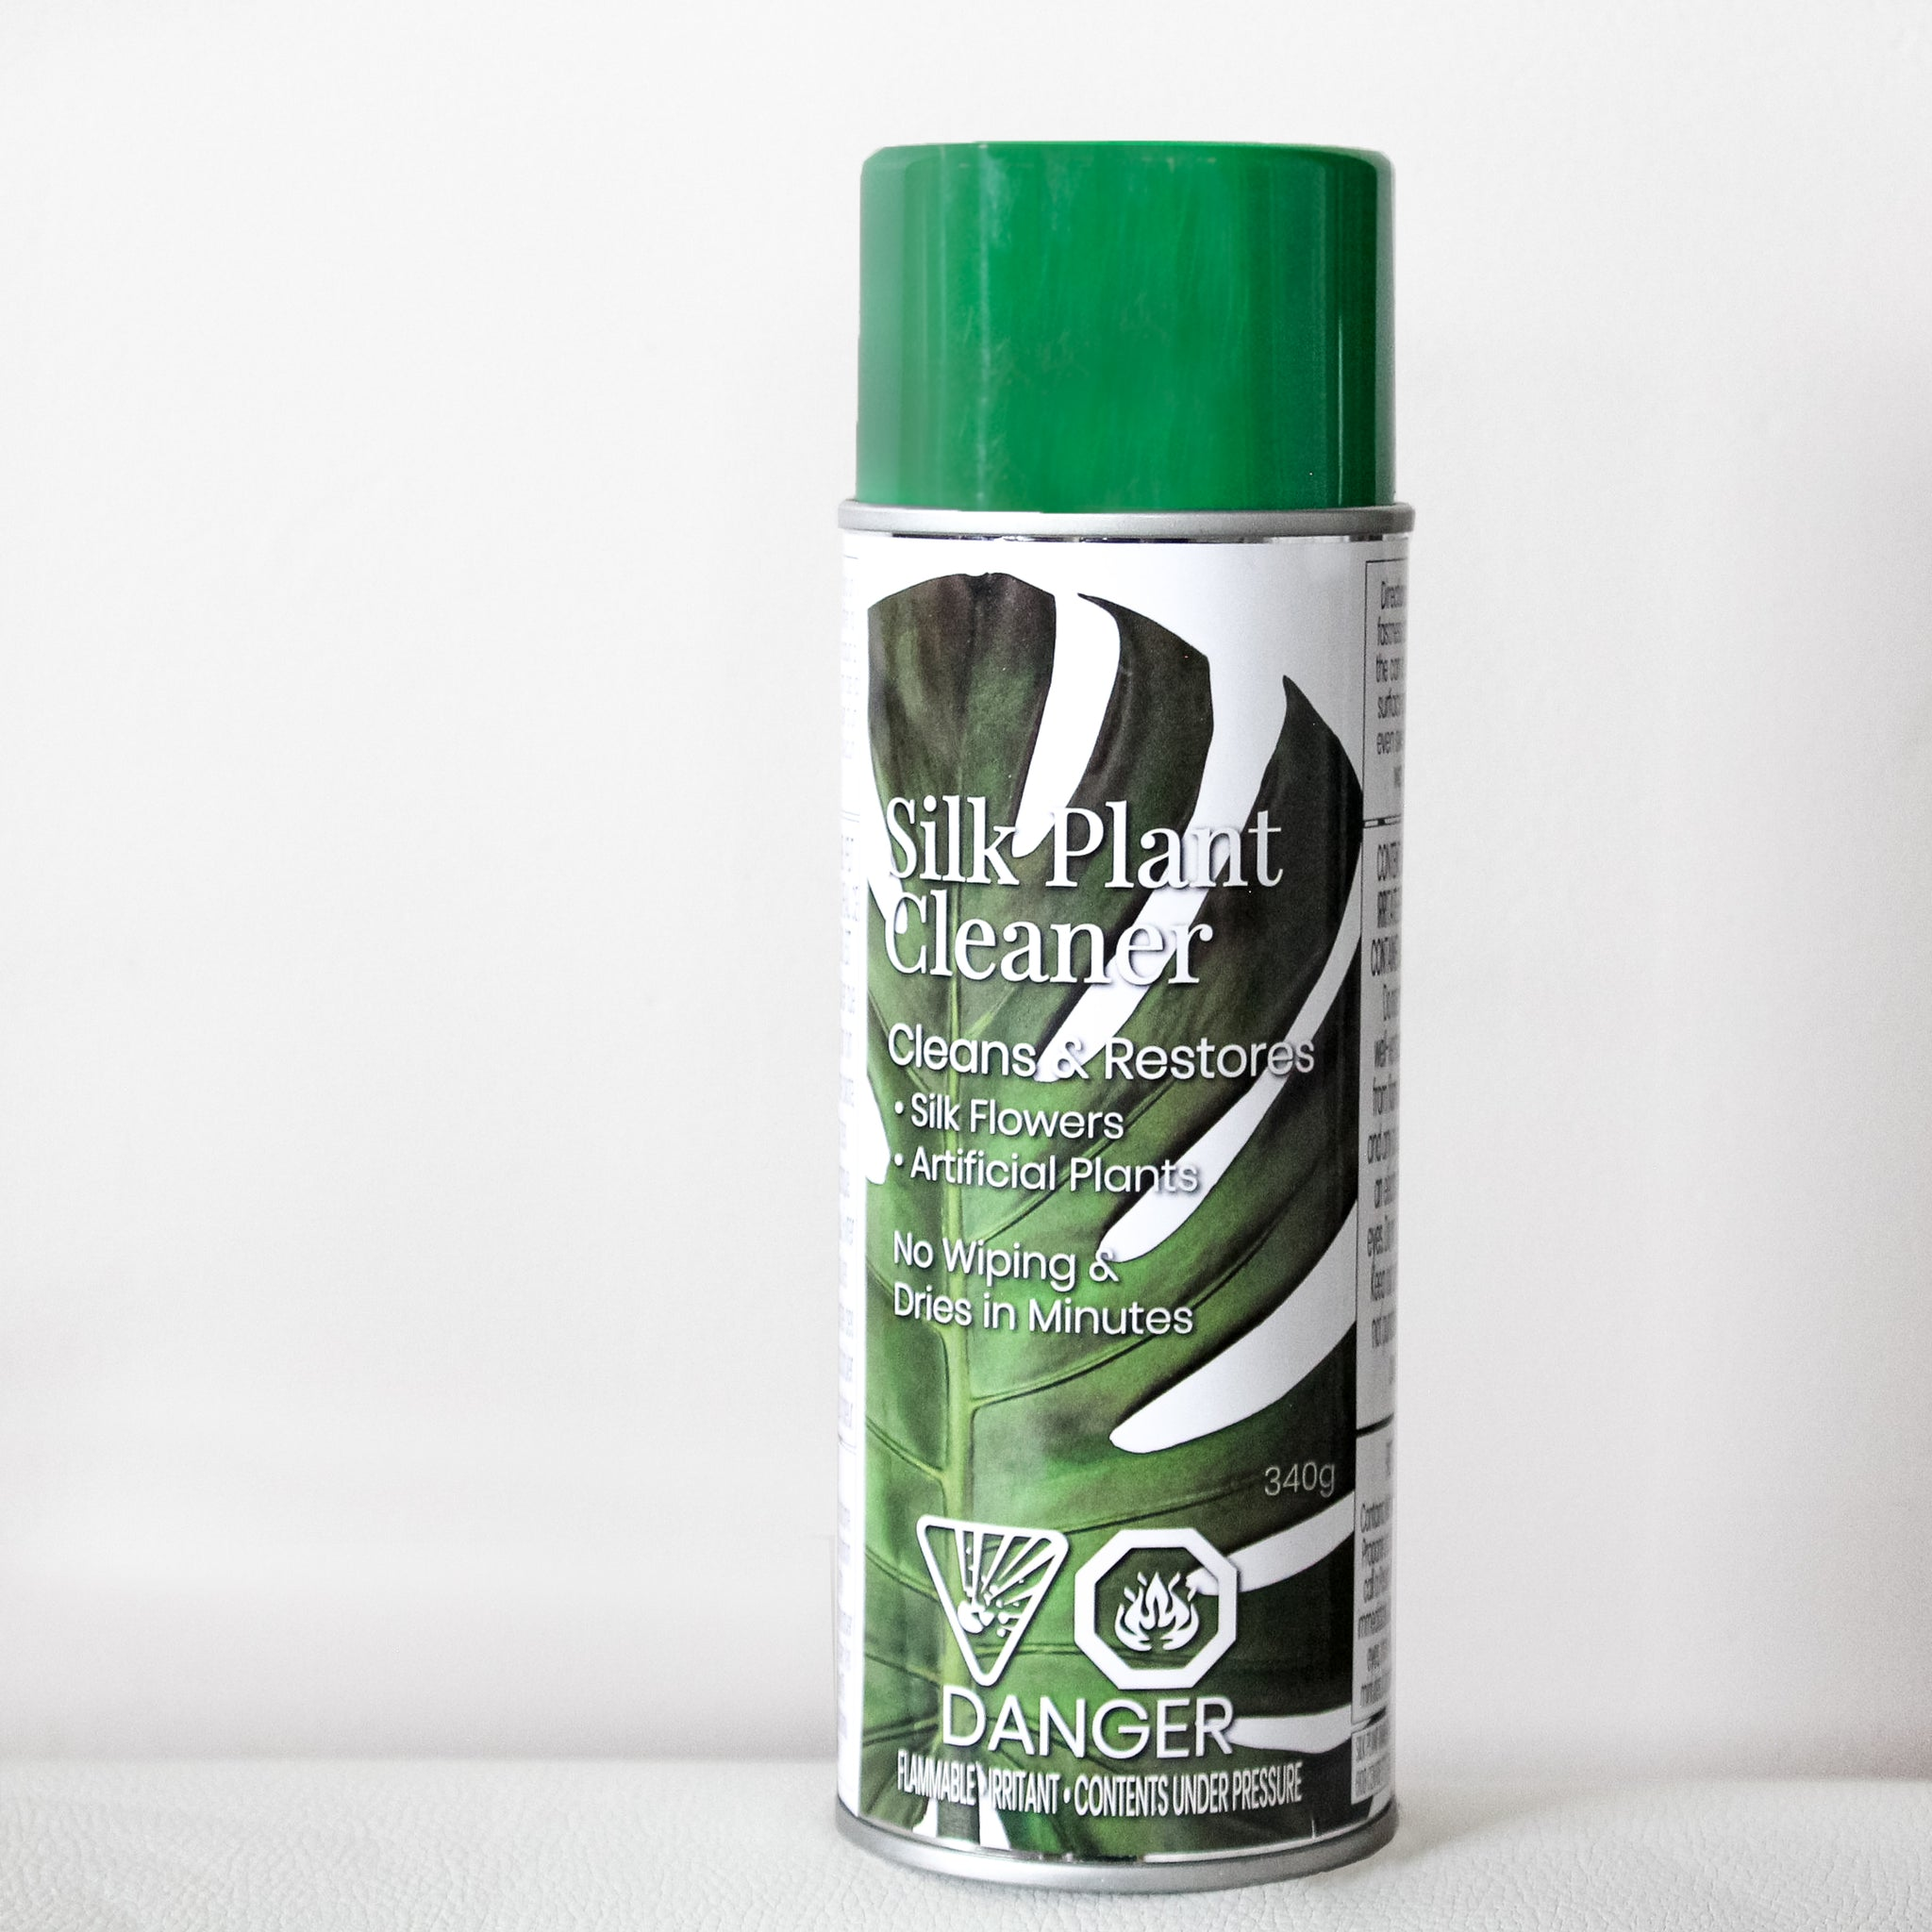 Silk Plant Cleaner